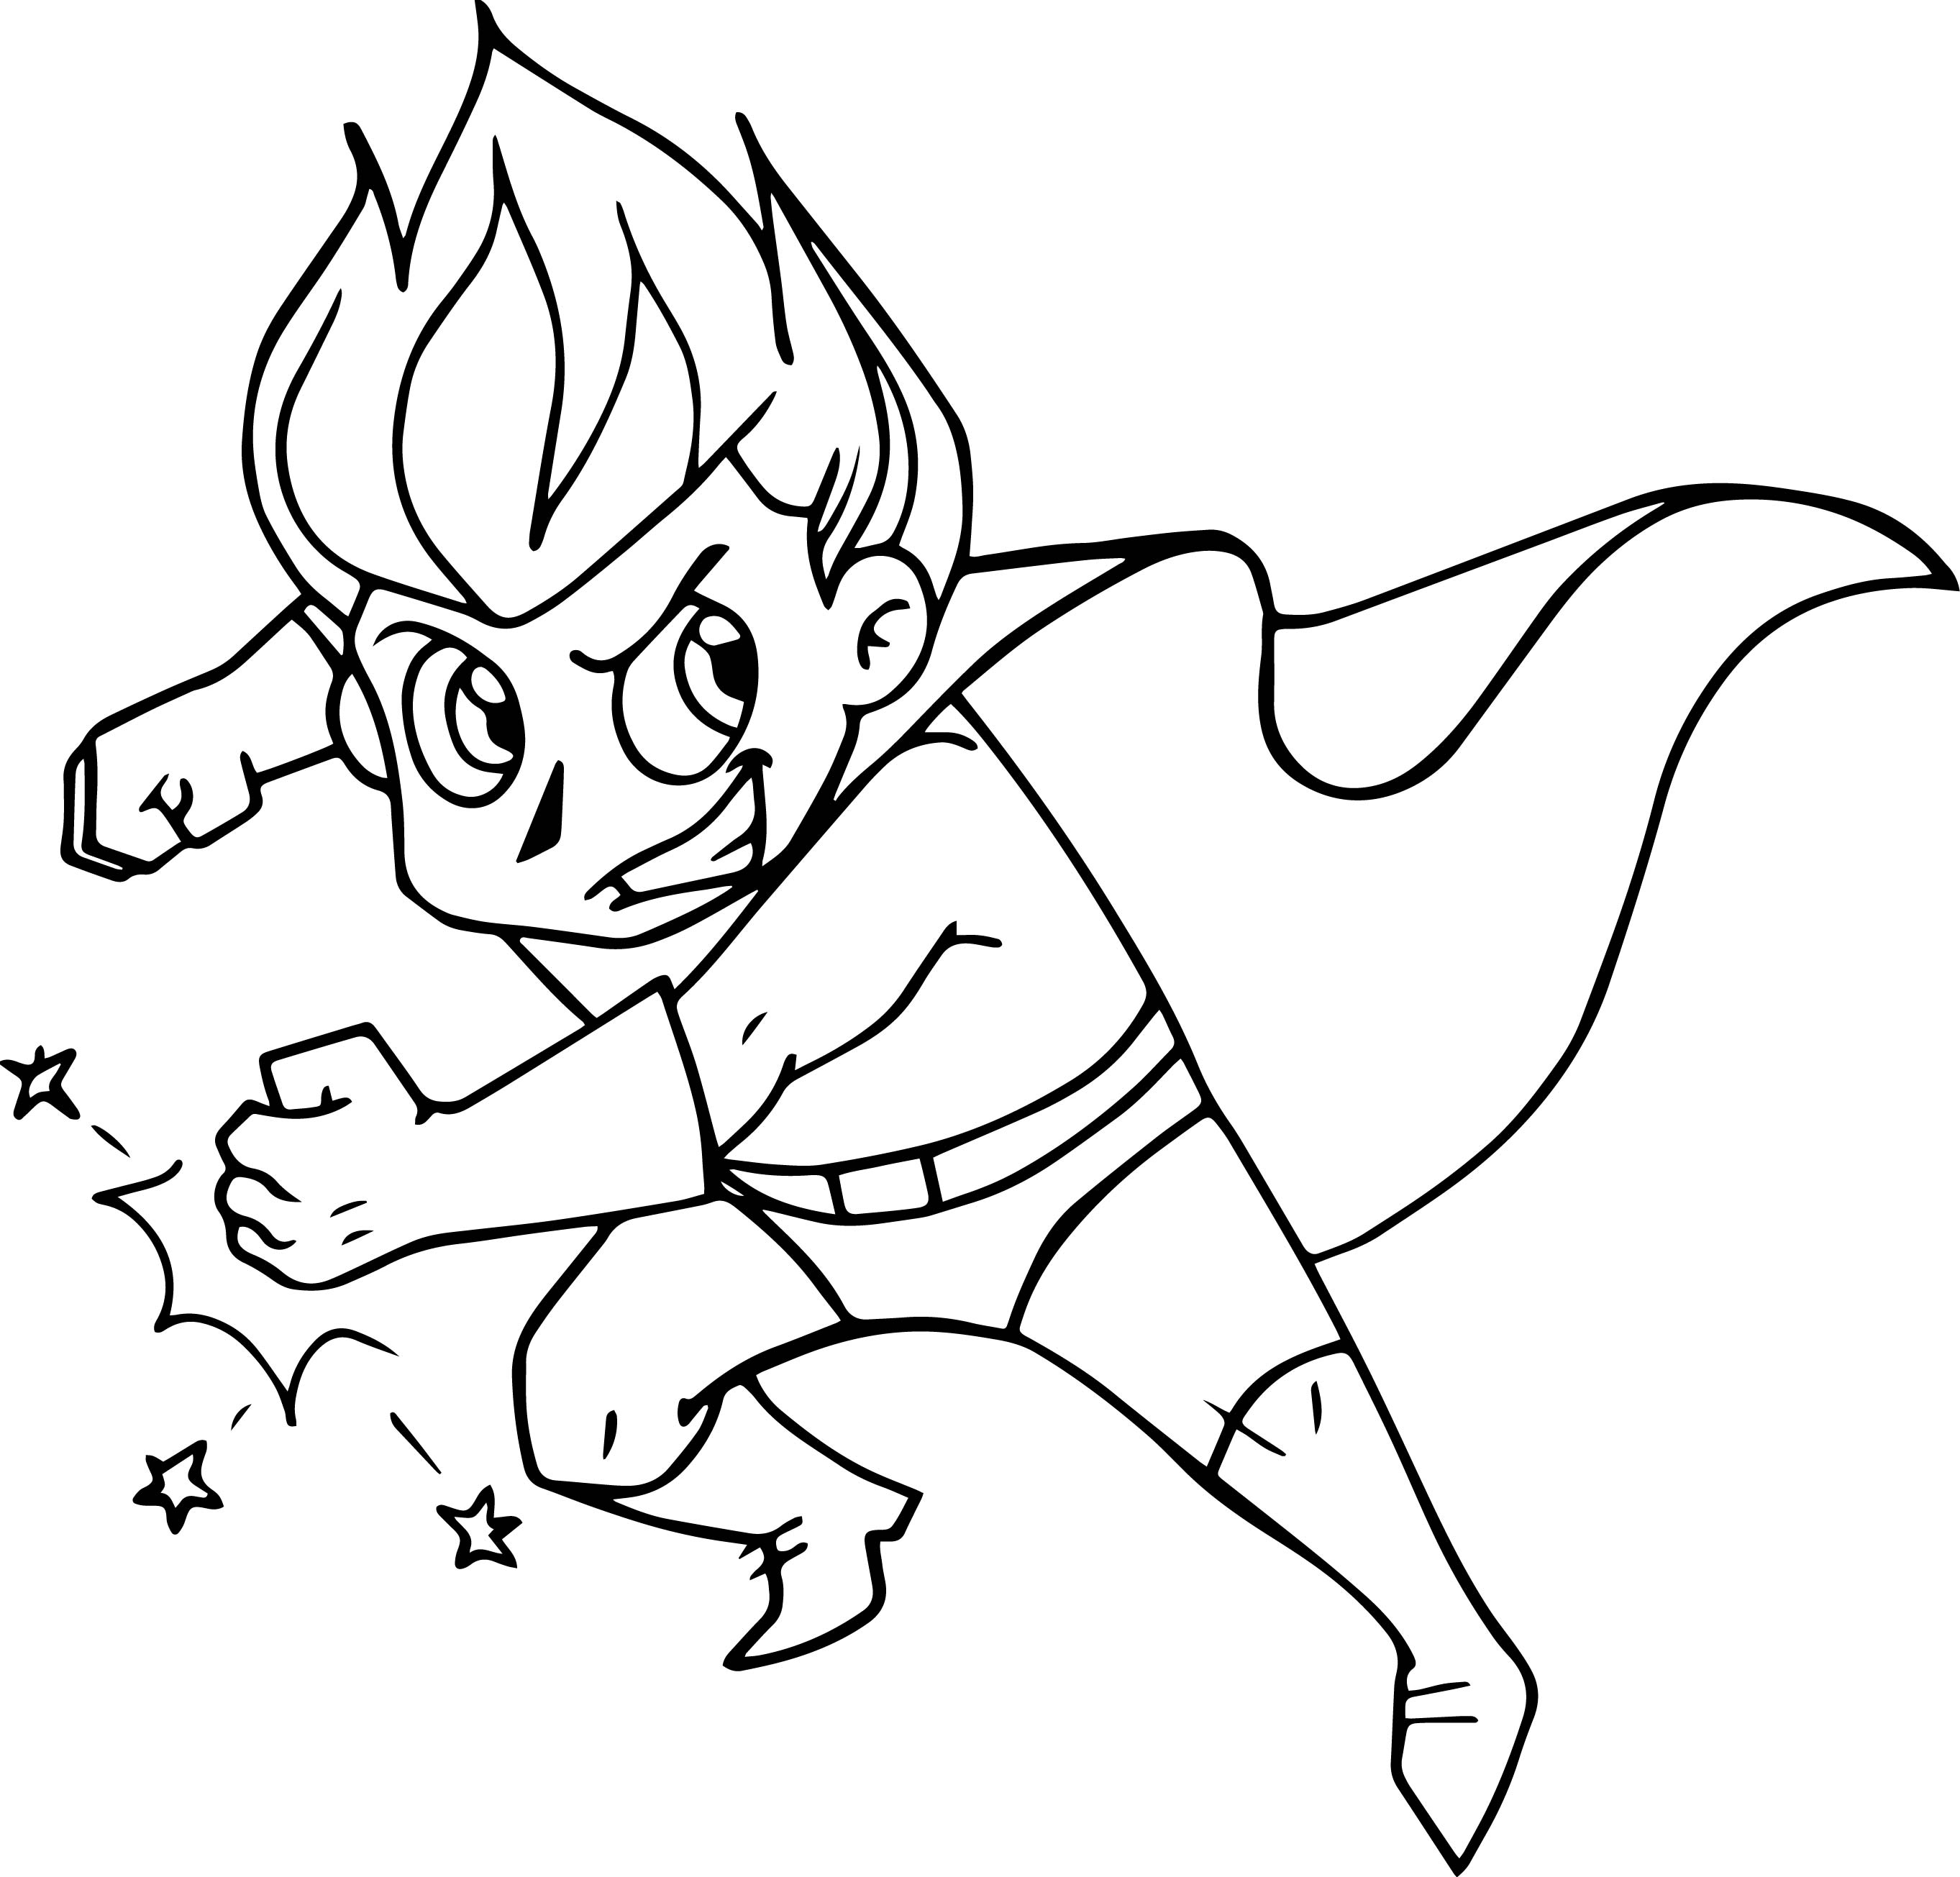 Superhero Comic Best Coloring Page